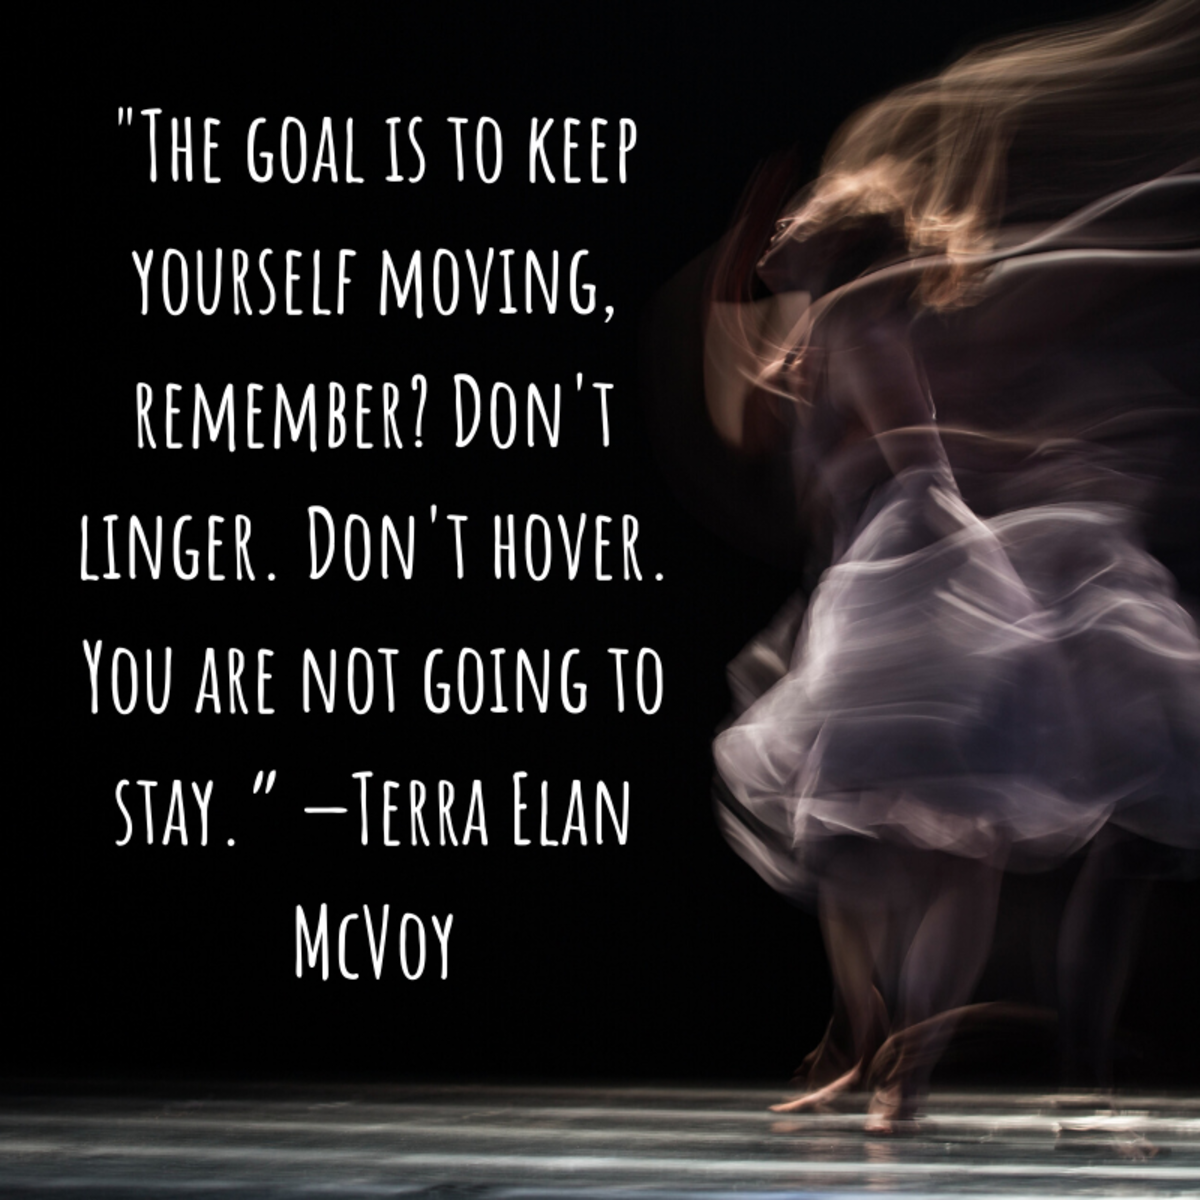 """The goal is to keep yourself moving, remember? Don't linger. Don't hover. You are not going to stay."" —Terra Elan McVoy"